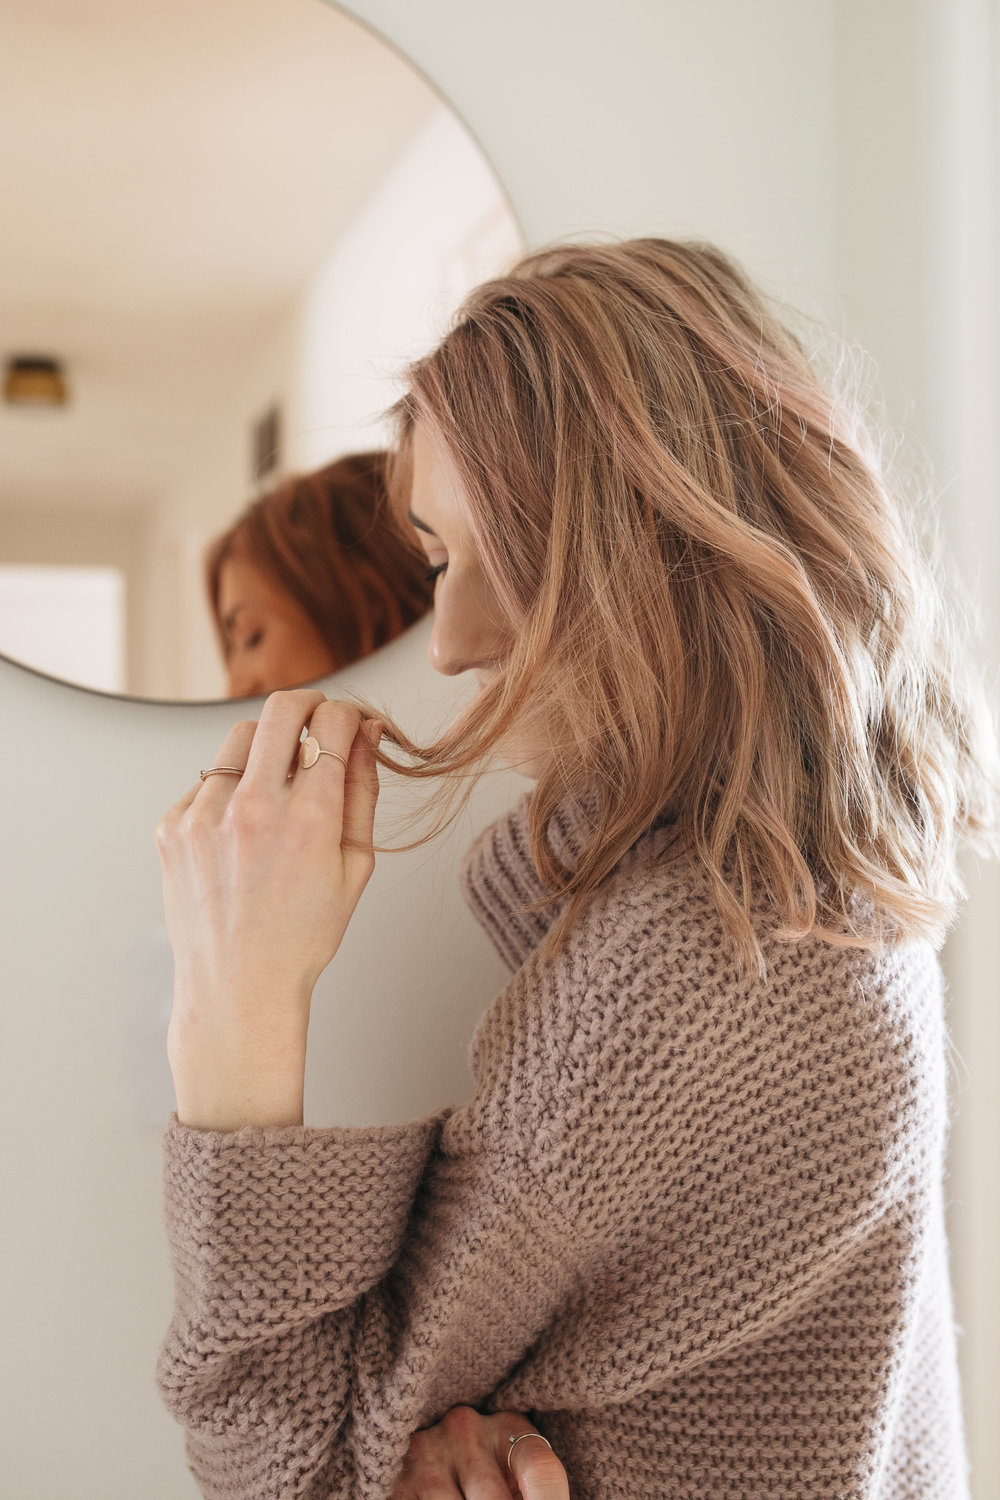 try out  Rose Gold Hair Tint  for yourself! It's perfect for switching up your look, minus the commitment of permanent pink dye.